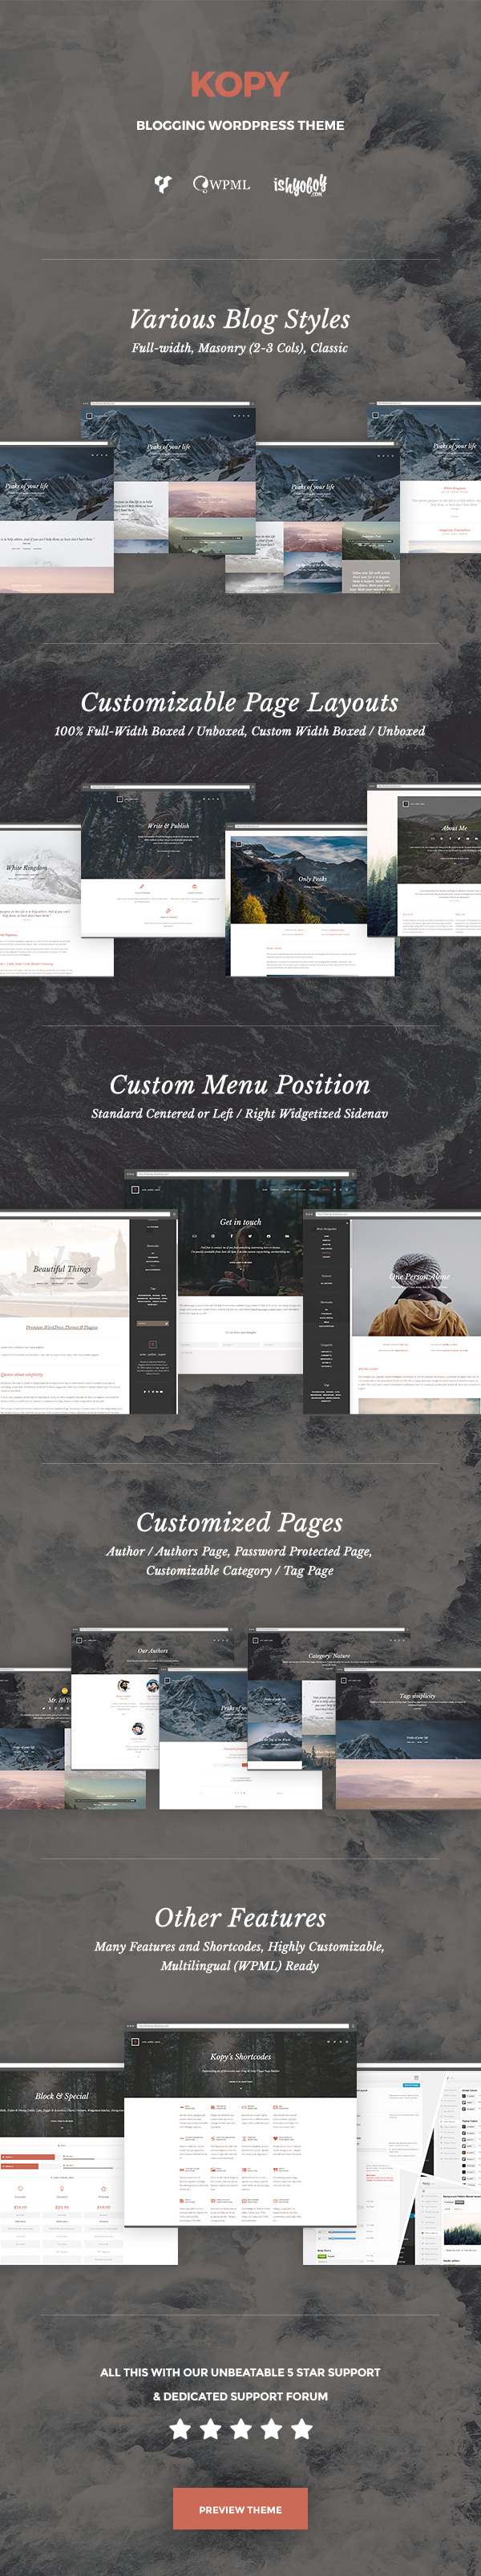 Kopy - Blogging WordPress Theme